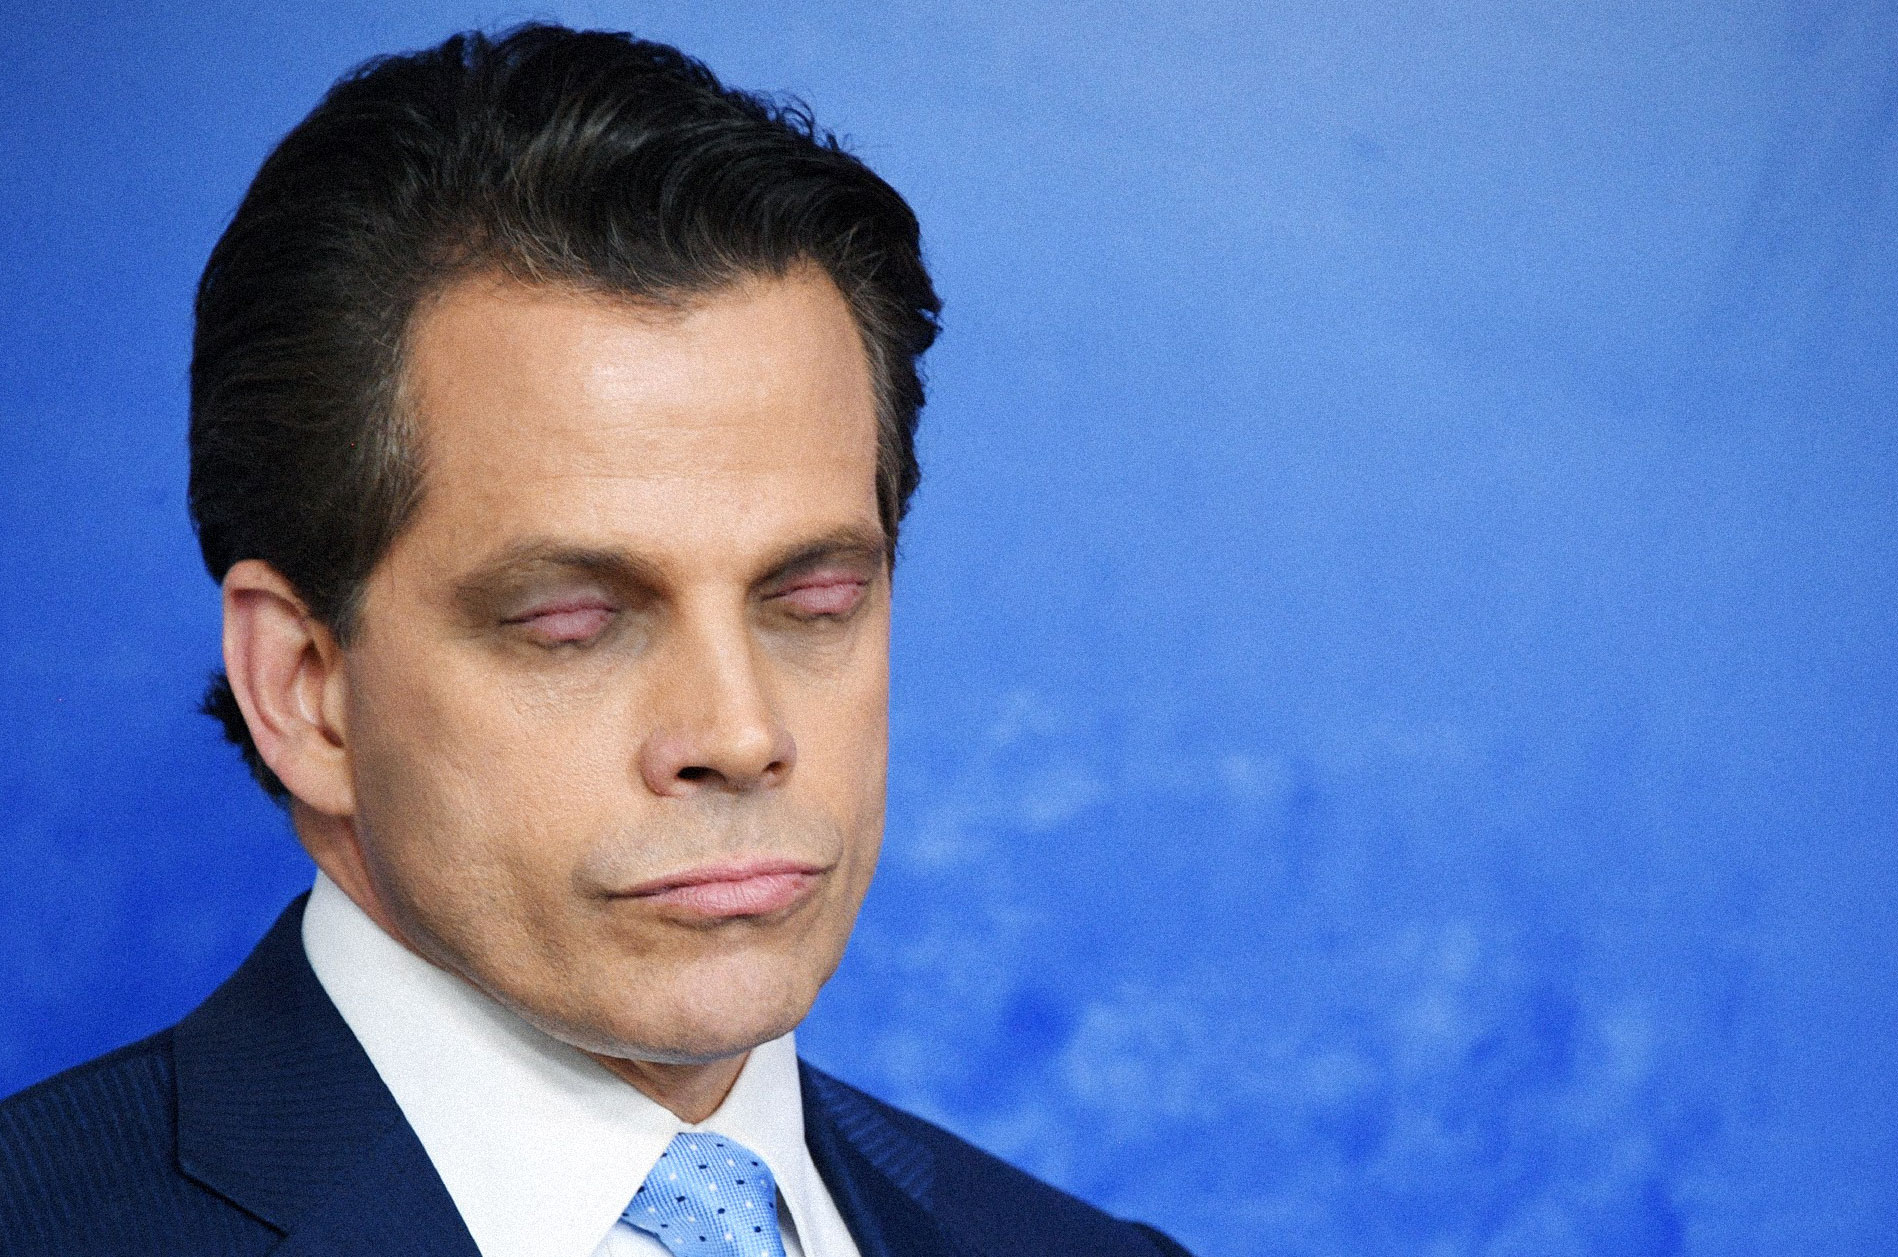 Is Scaramucci assembling the Avengers, or the Bad News Bears?